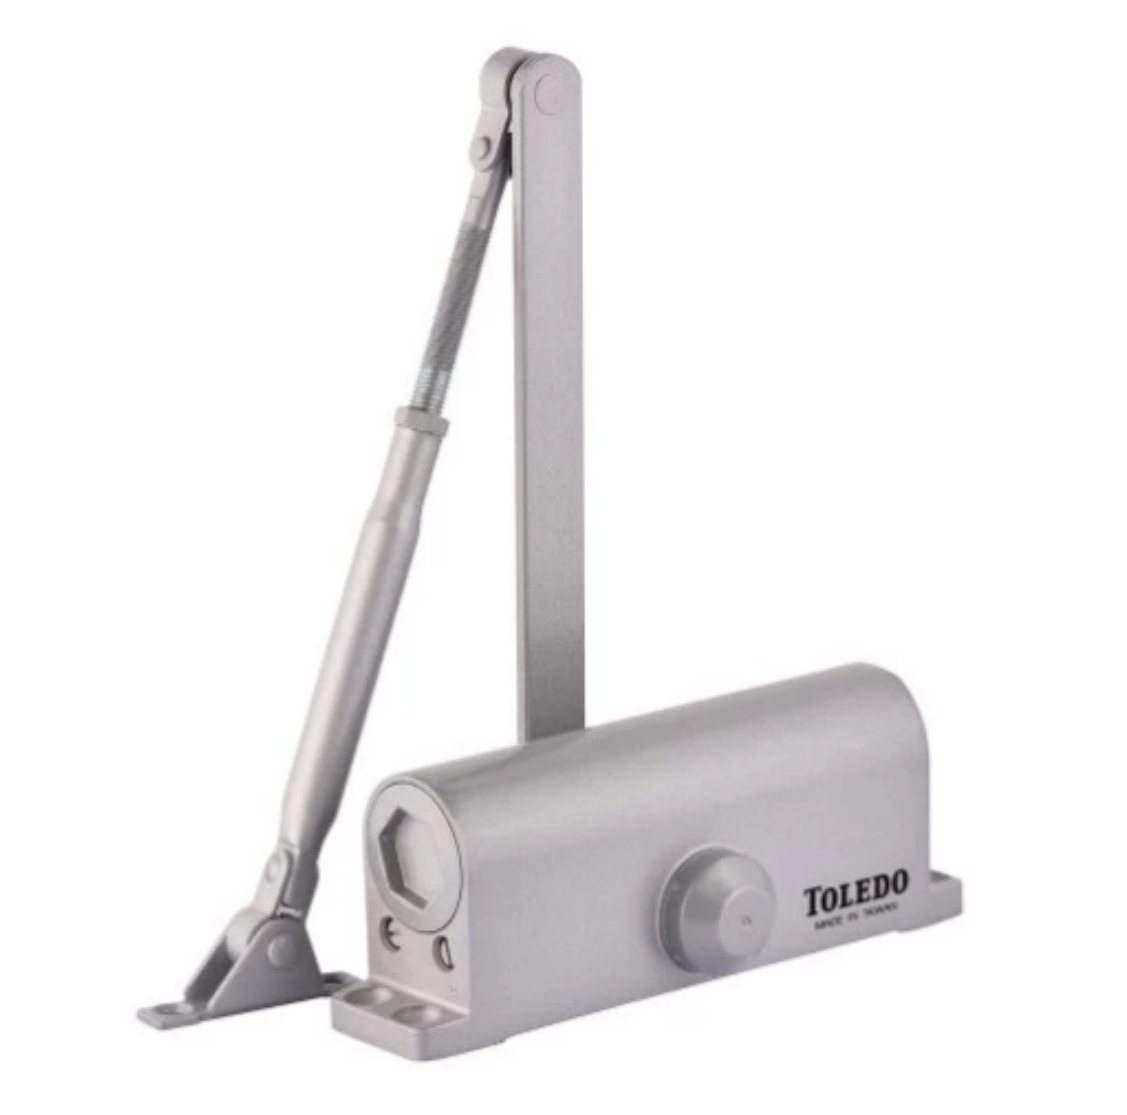 Door Closer Aluminum/Silver / Gray TC3 : Size 3 Spring : For Wood, Metal Or Commercial Glass Glass Residential - Commercial Doors : Self Closing Automatic Door Closer : By TOLEDO